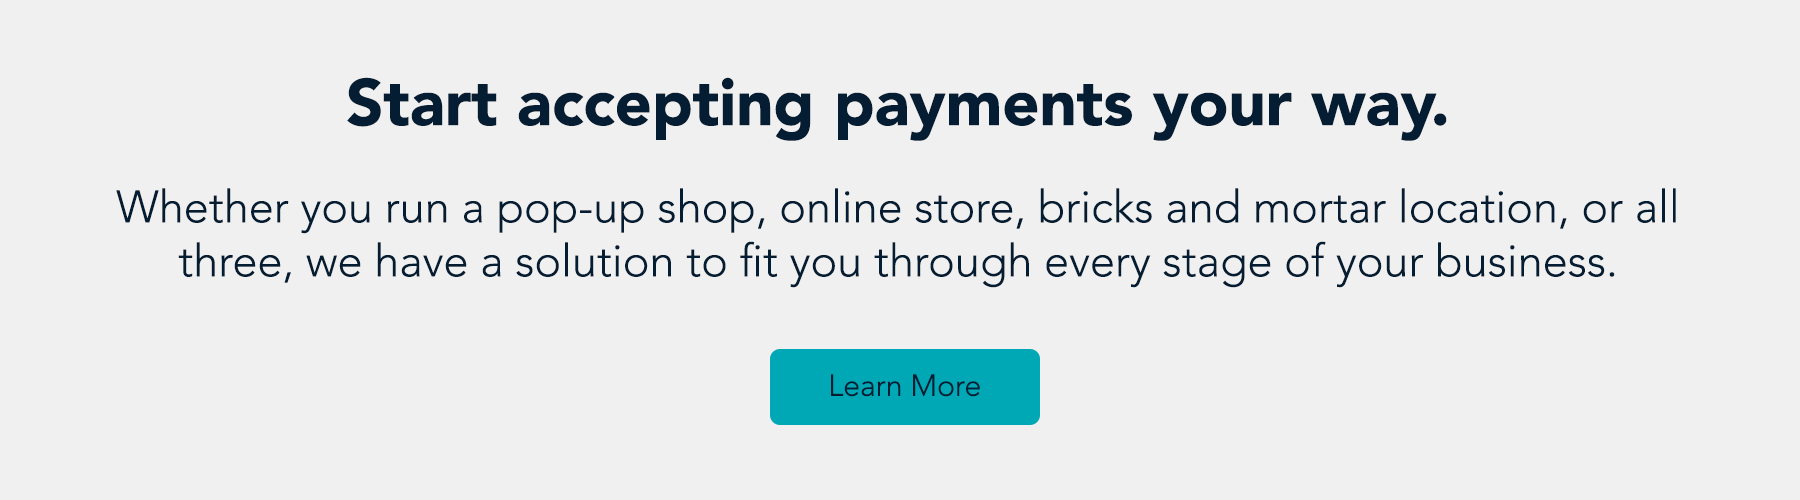 Start accepting payments your way. Whether you run a pop-up shop, online store, bricks and mortar location, or all three, we have a solution to fit you through every stage of your business. Learn more.